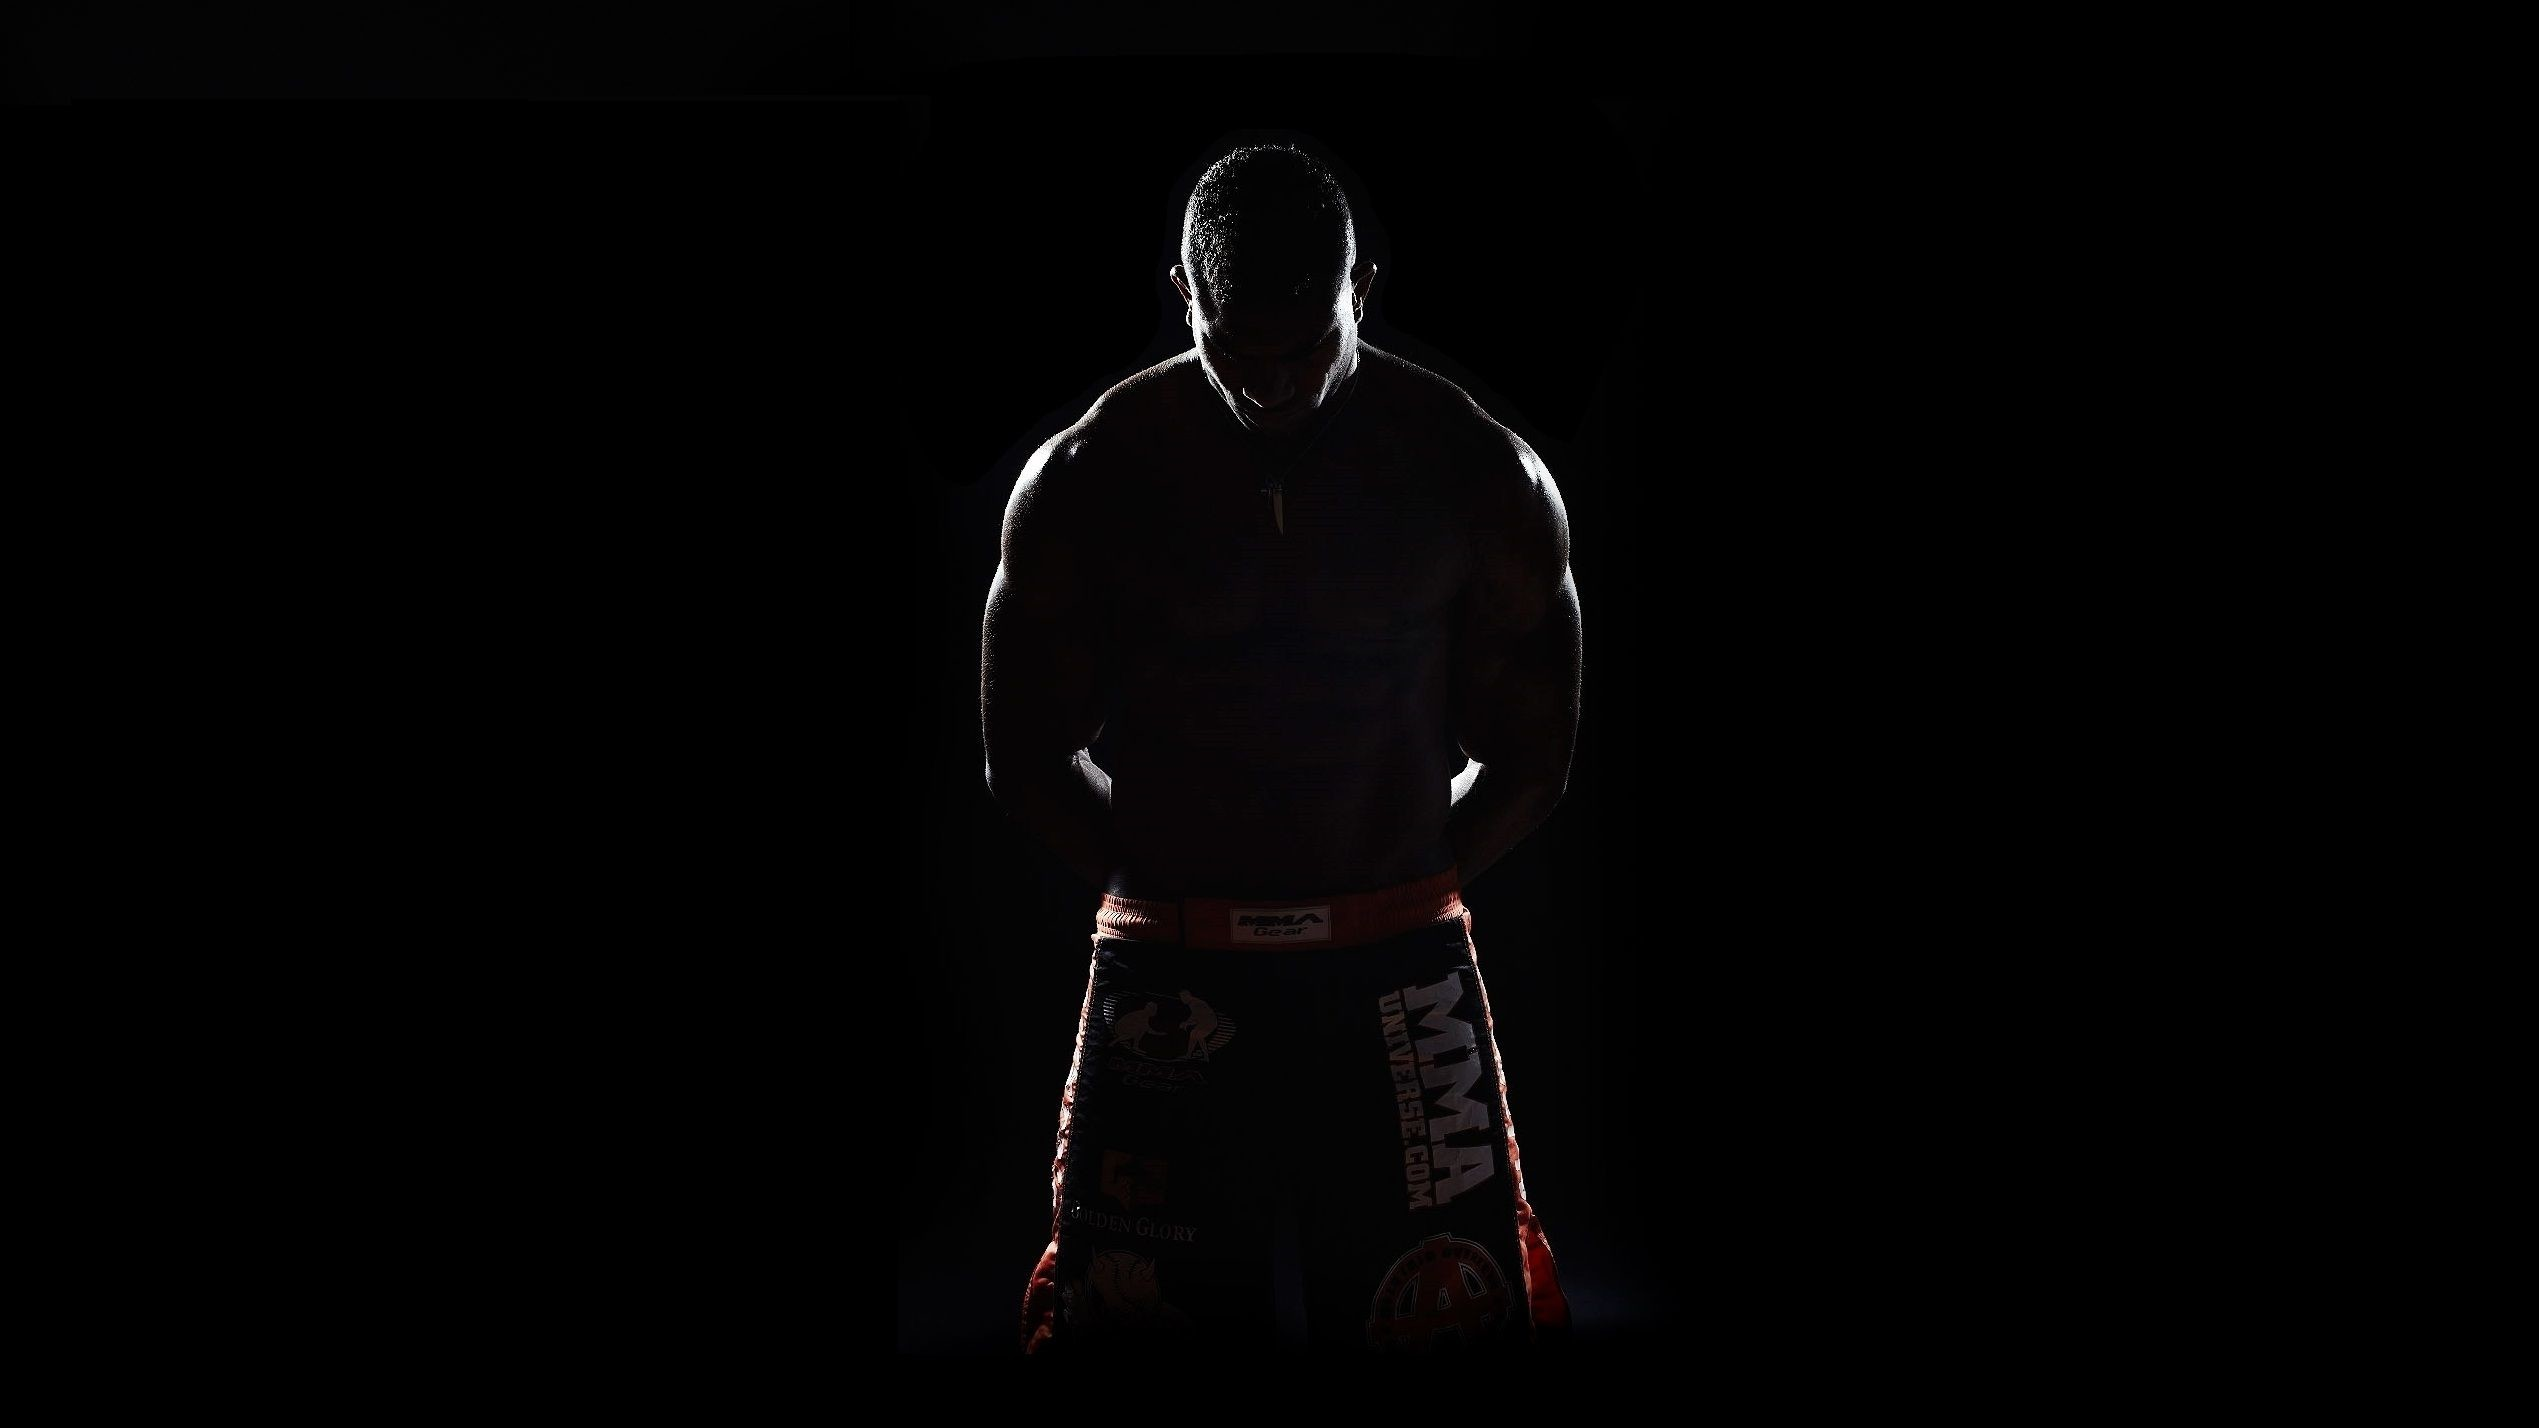 Tapout Iphone Wallpaper Ufc Iphone 6 Wallpaper 68 Images